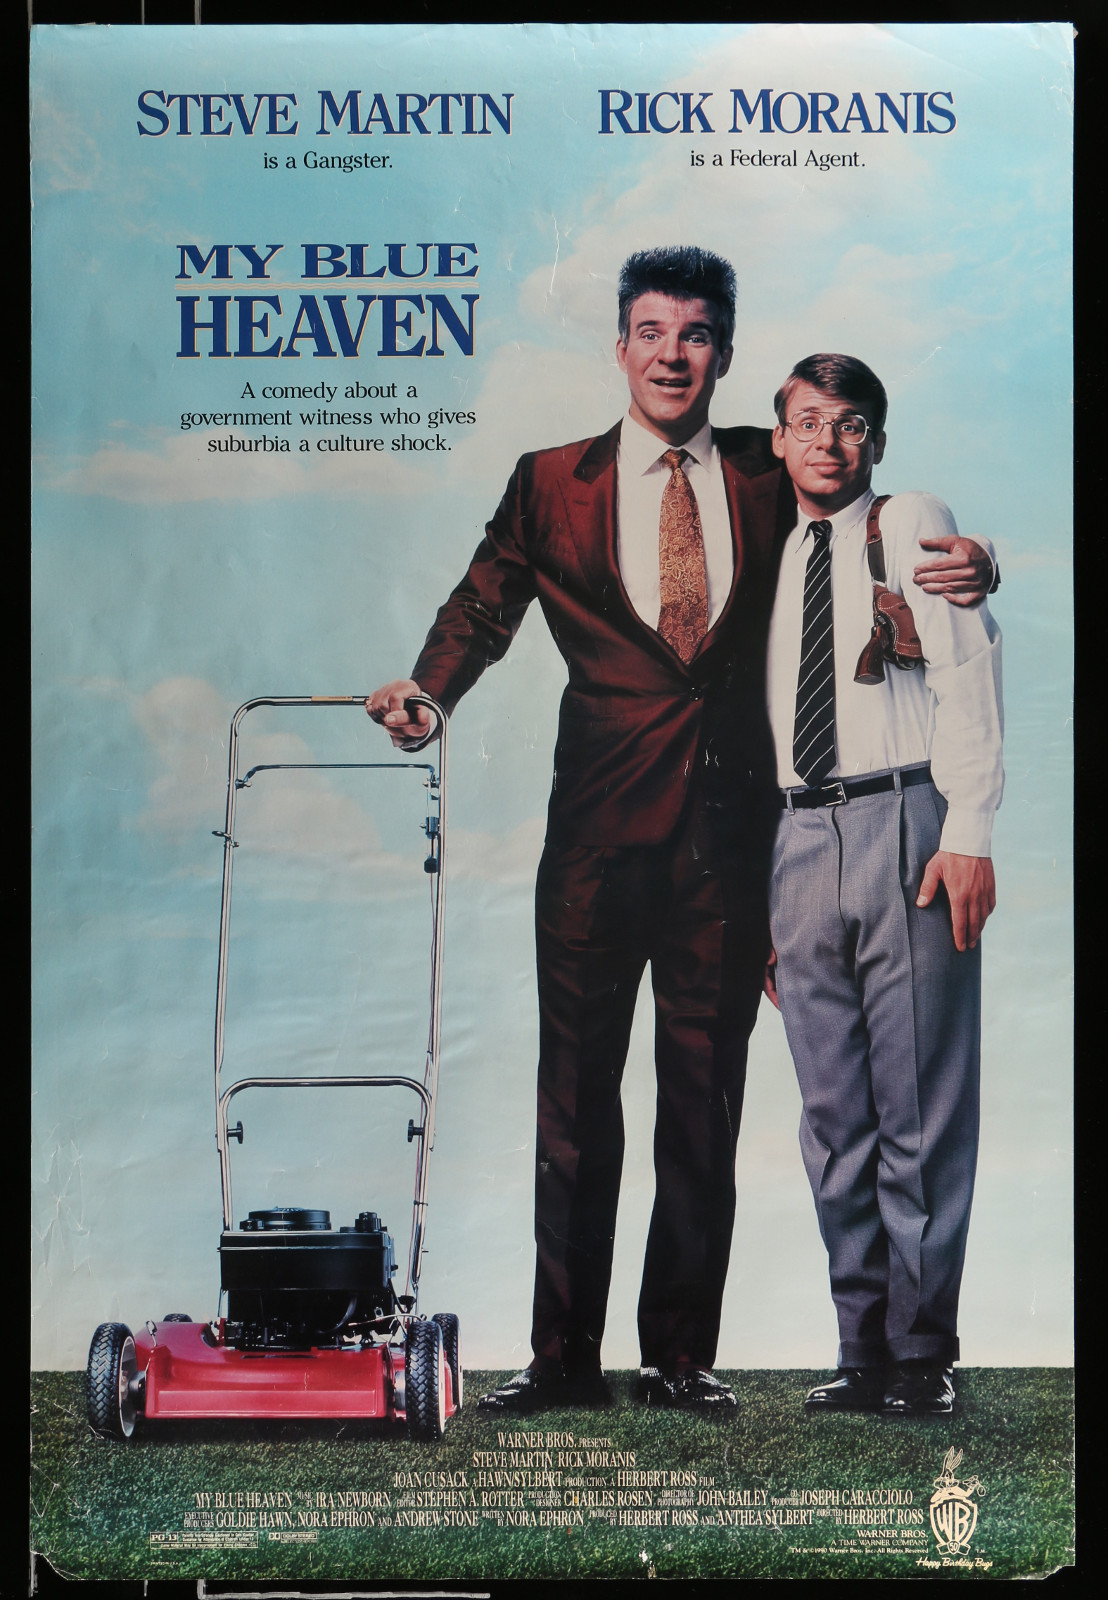 My Blue Heaven 2A364 A Part Of A Lot 29 Unfolded Mostly Single-Sided 27X40 One-Sheets '90S-00S Great Movie Images!